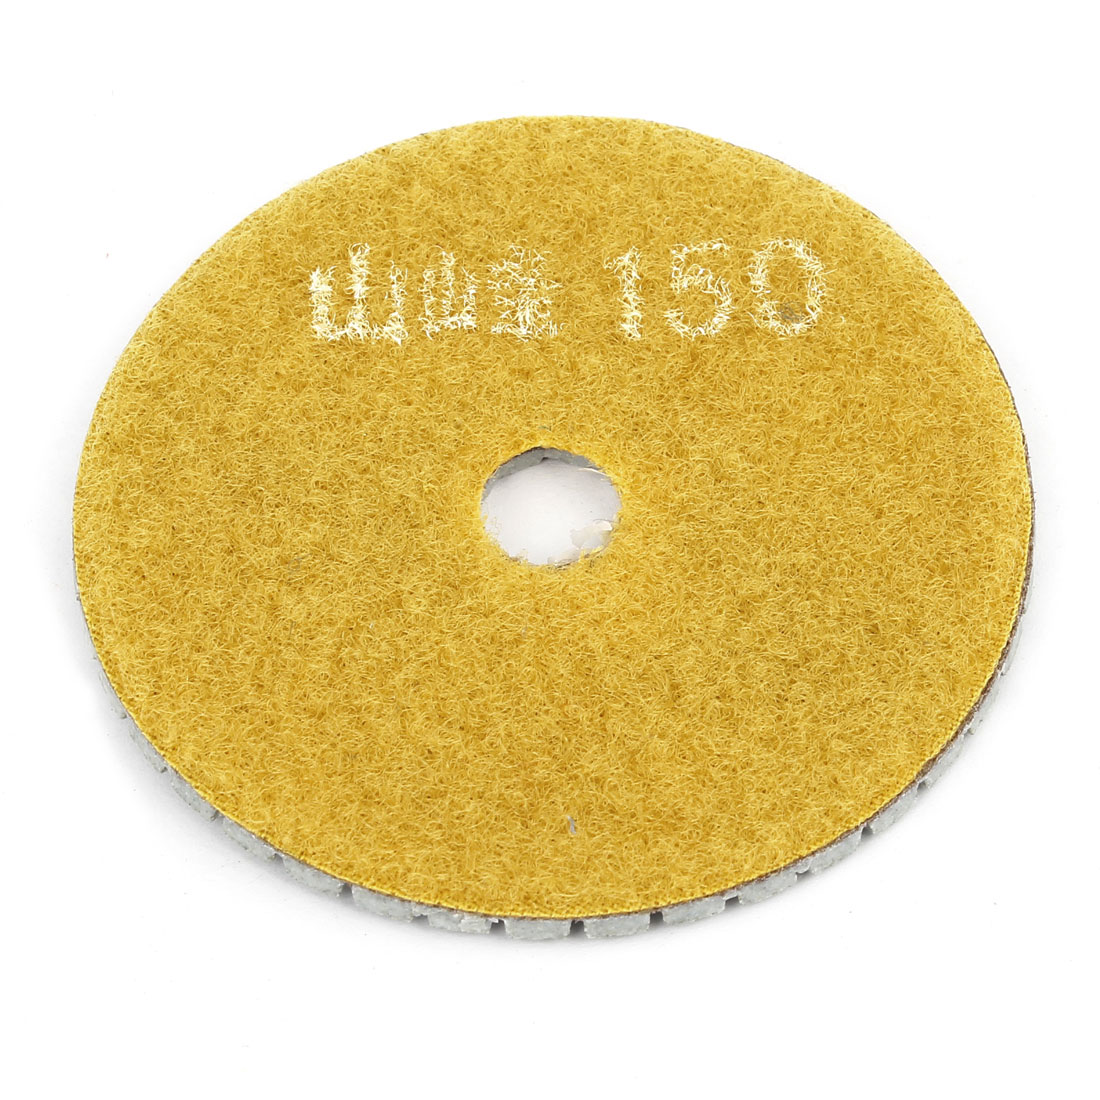 "Yellow Gray Grit 150 3"" Diameter Tile Stone Polisher Grinder Marble Polishing Pad"